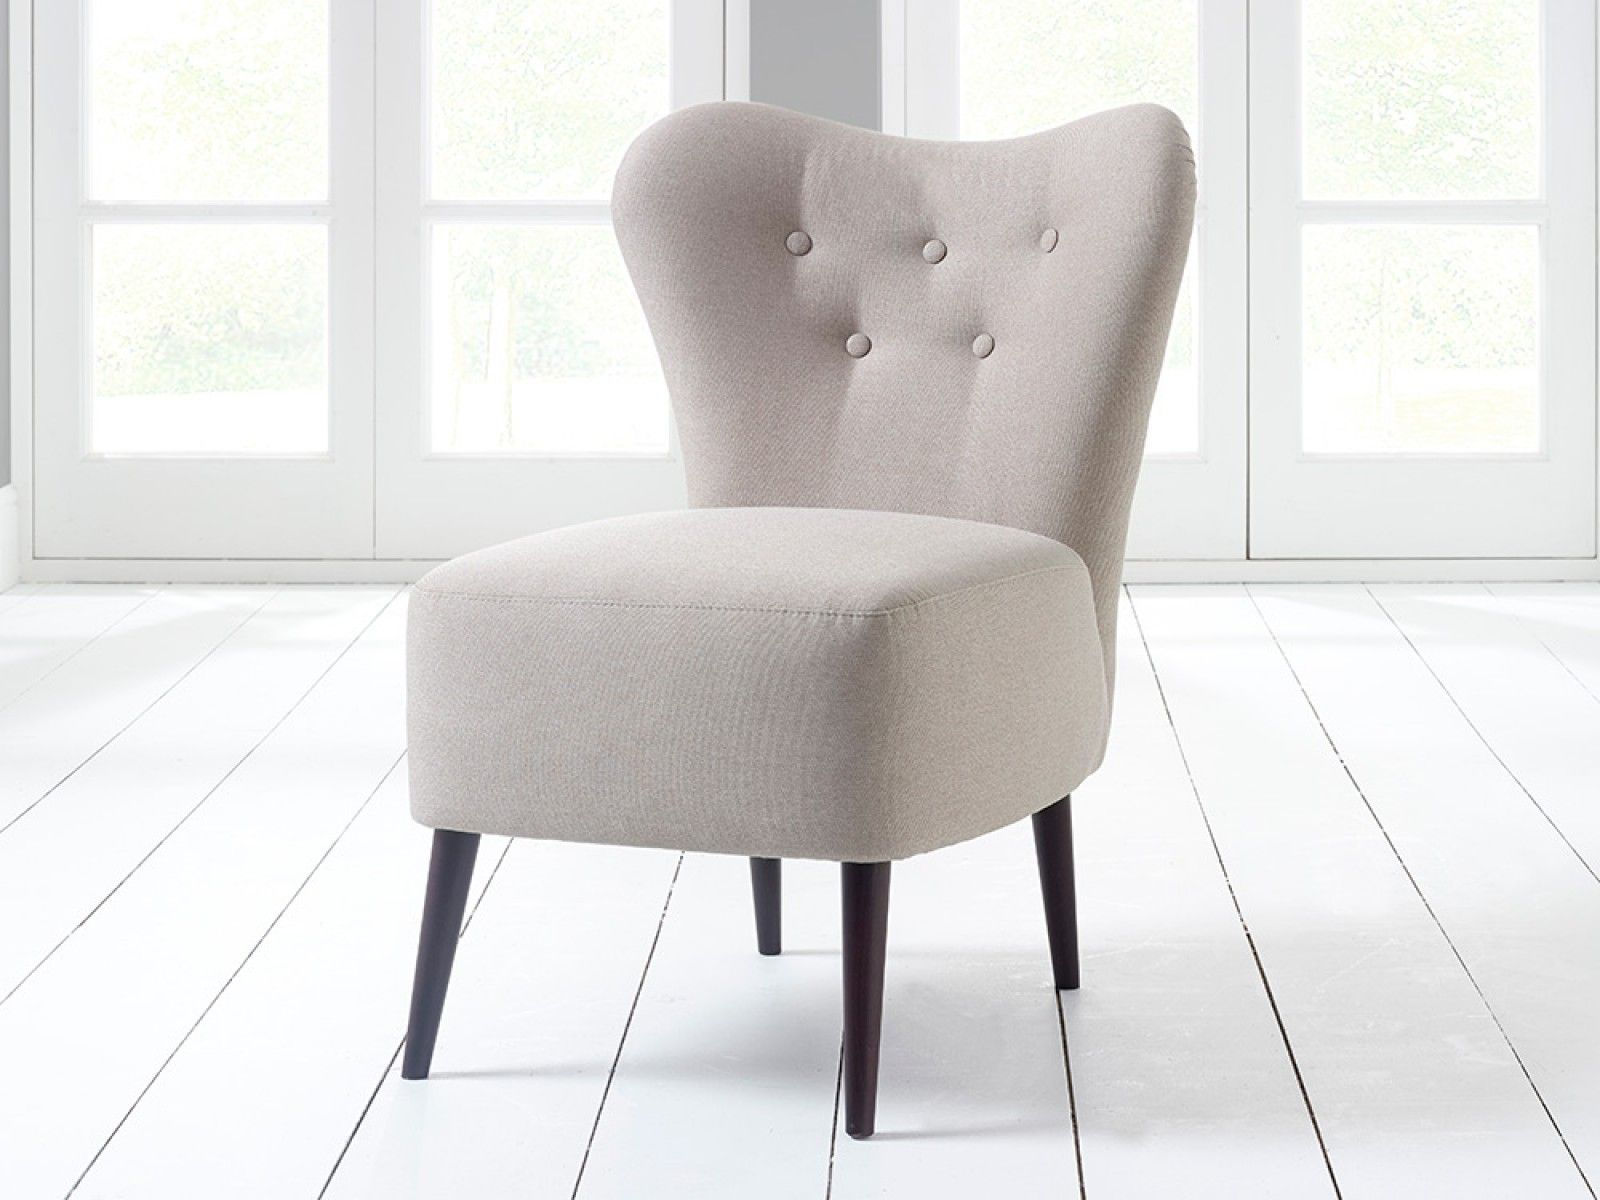 Arianna Chair with Buttons | Chair, Bedroom chair ...